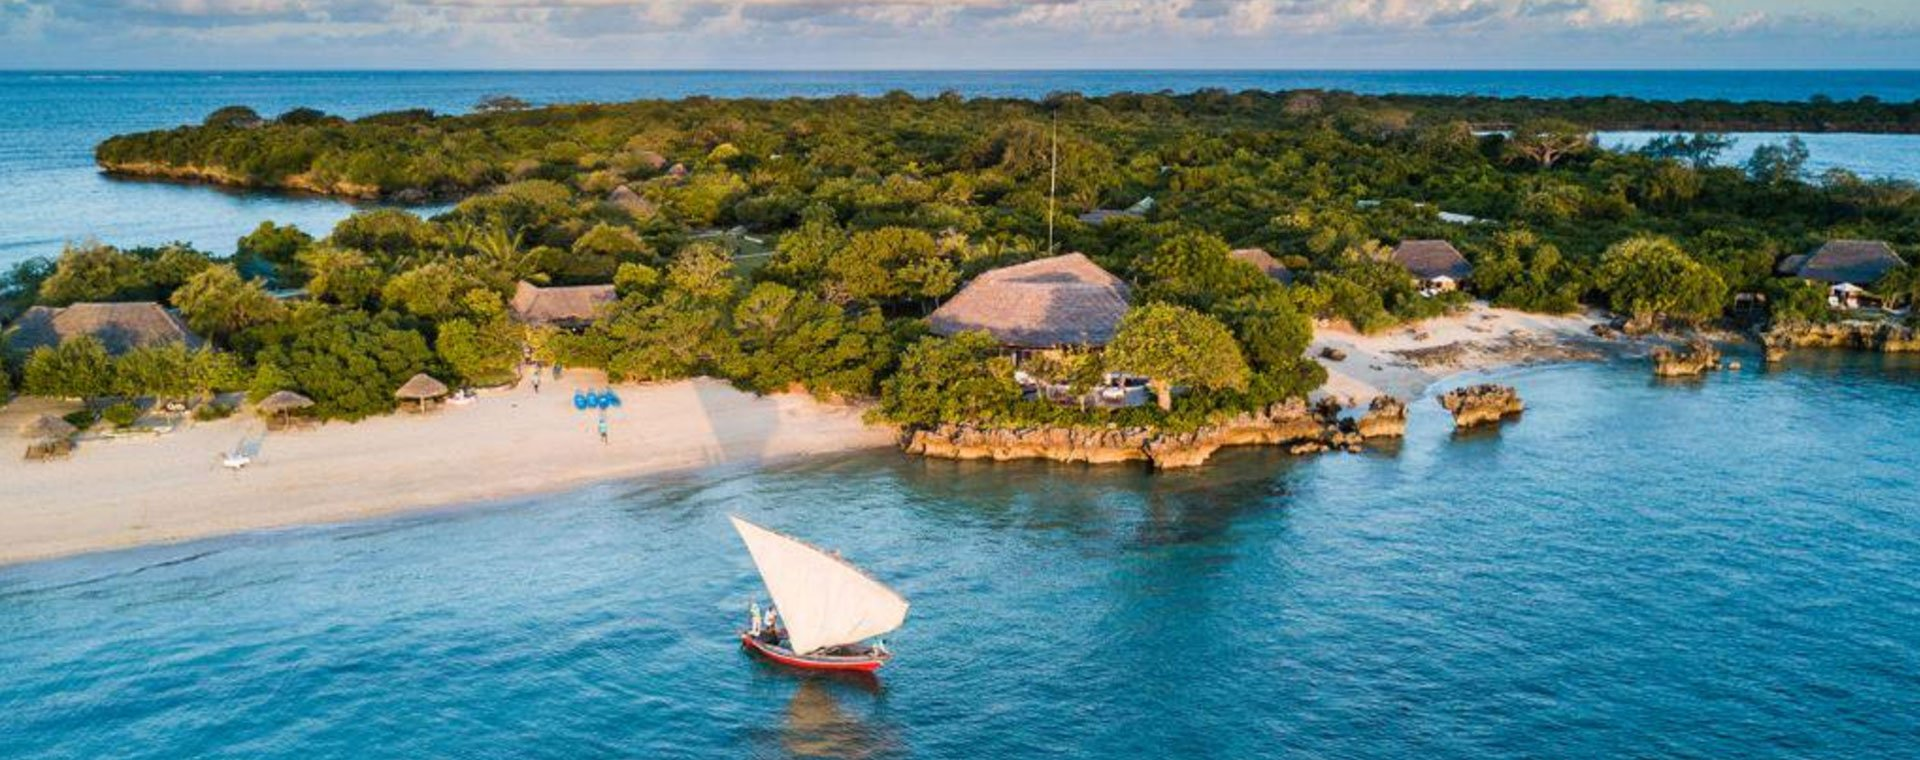 iconic Mozambique